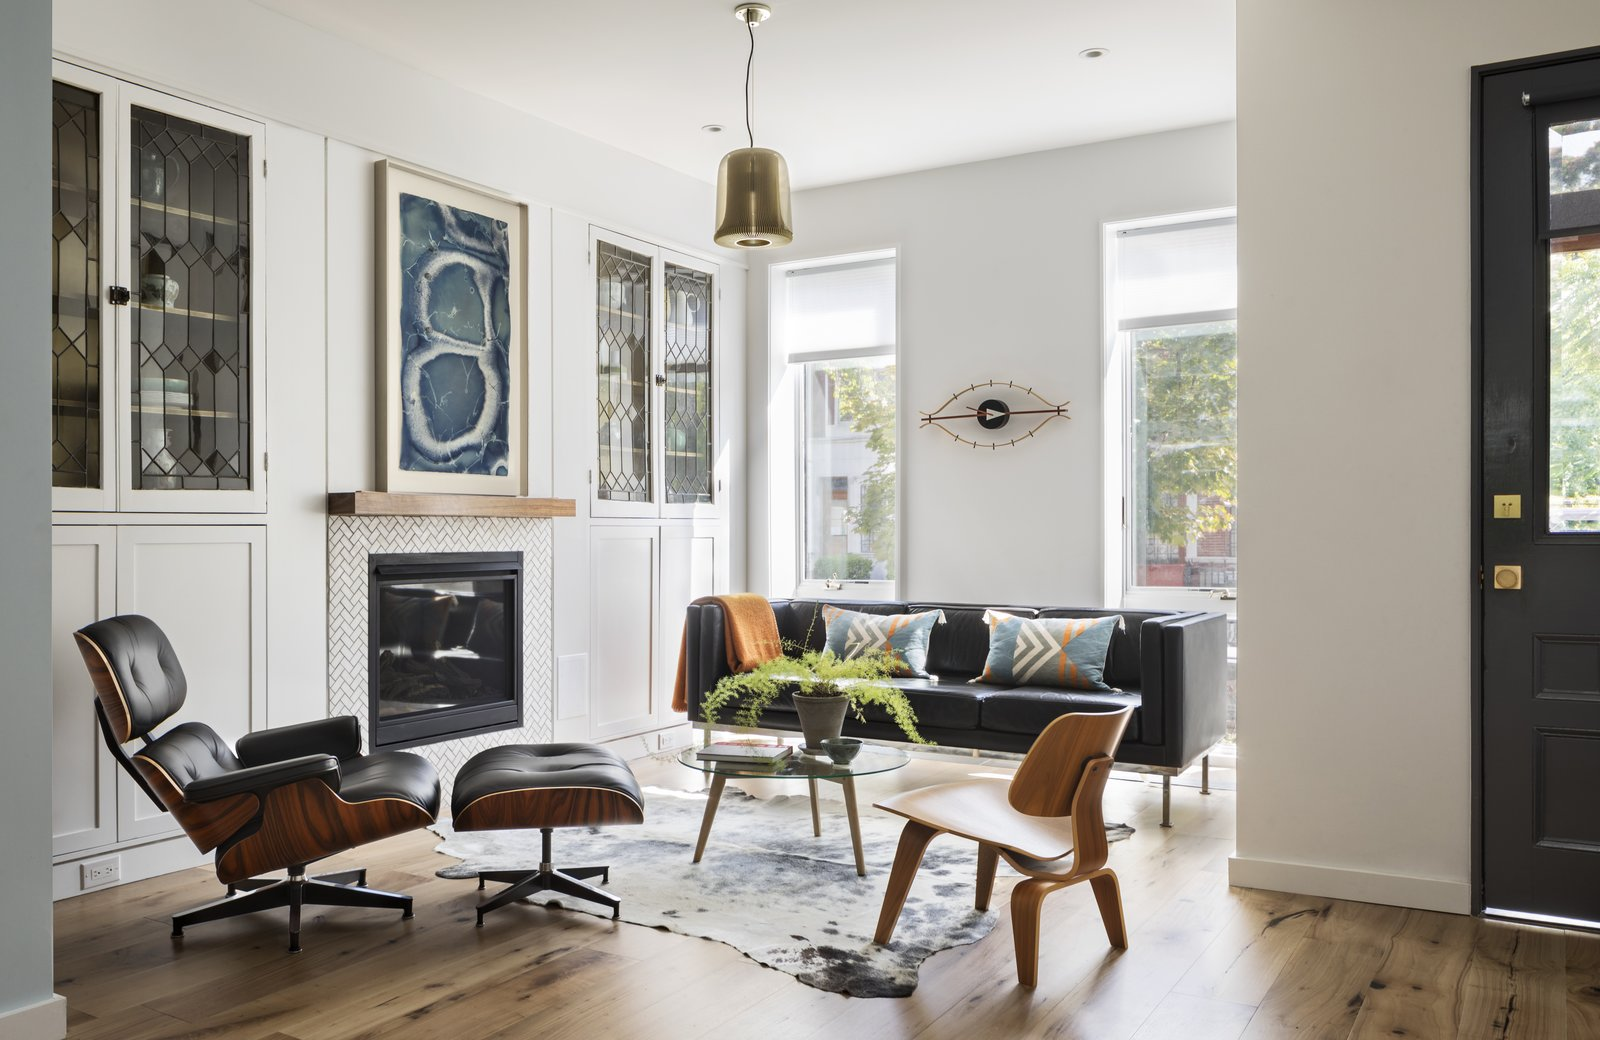 BFDO Architects Crown Heights Brownstone living area